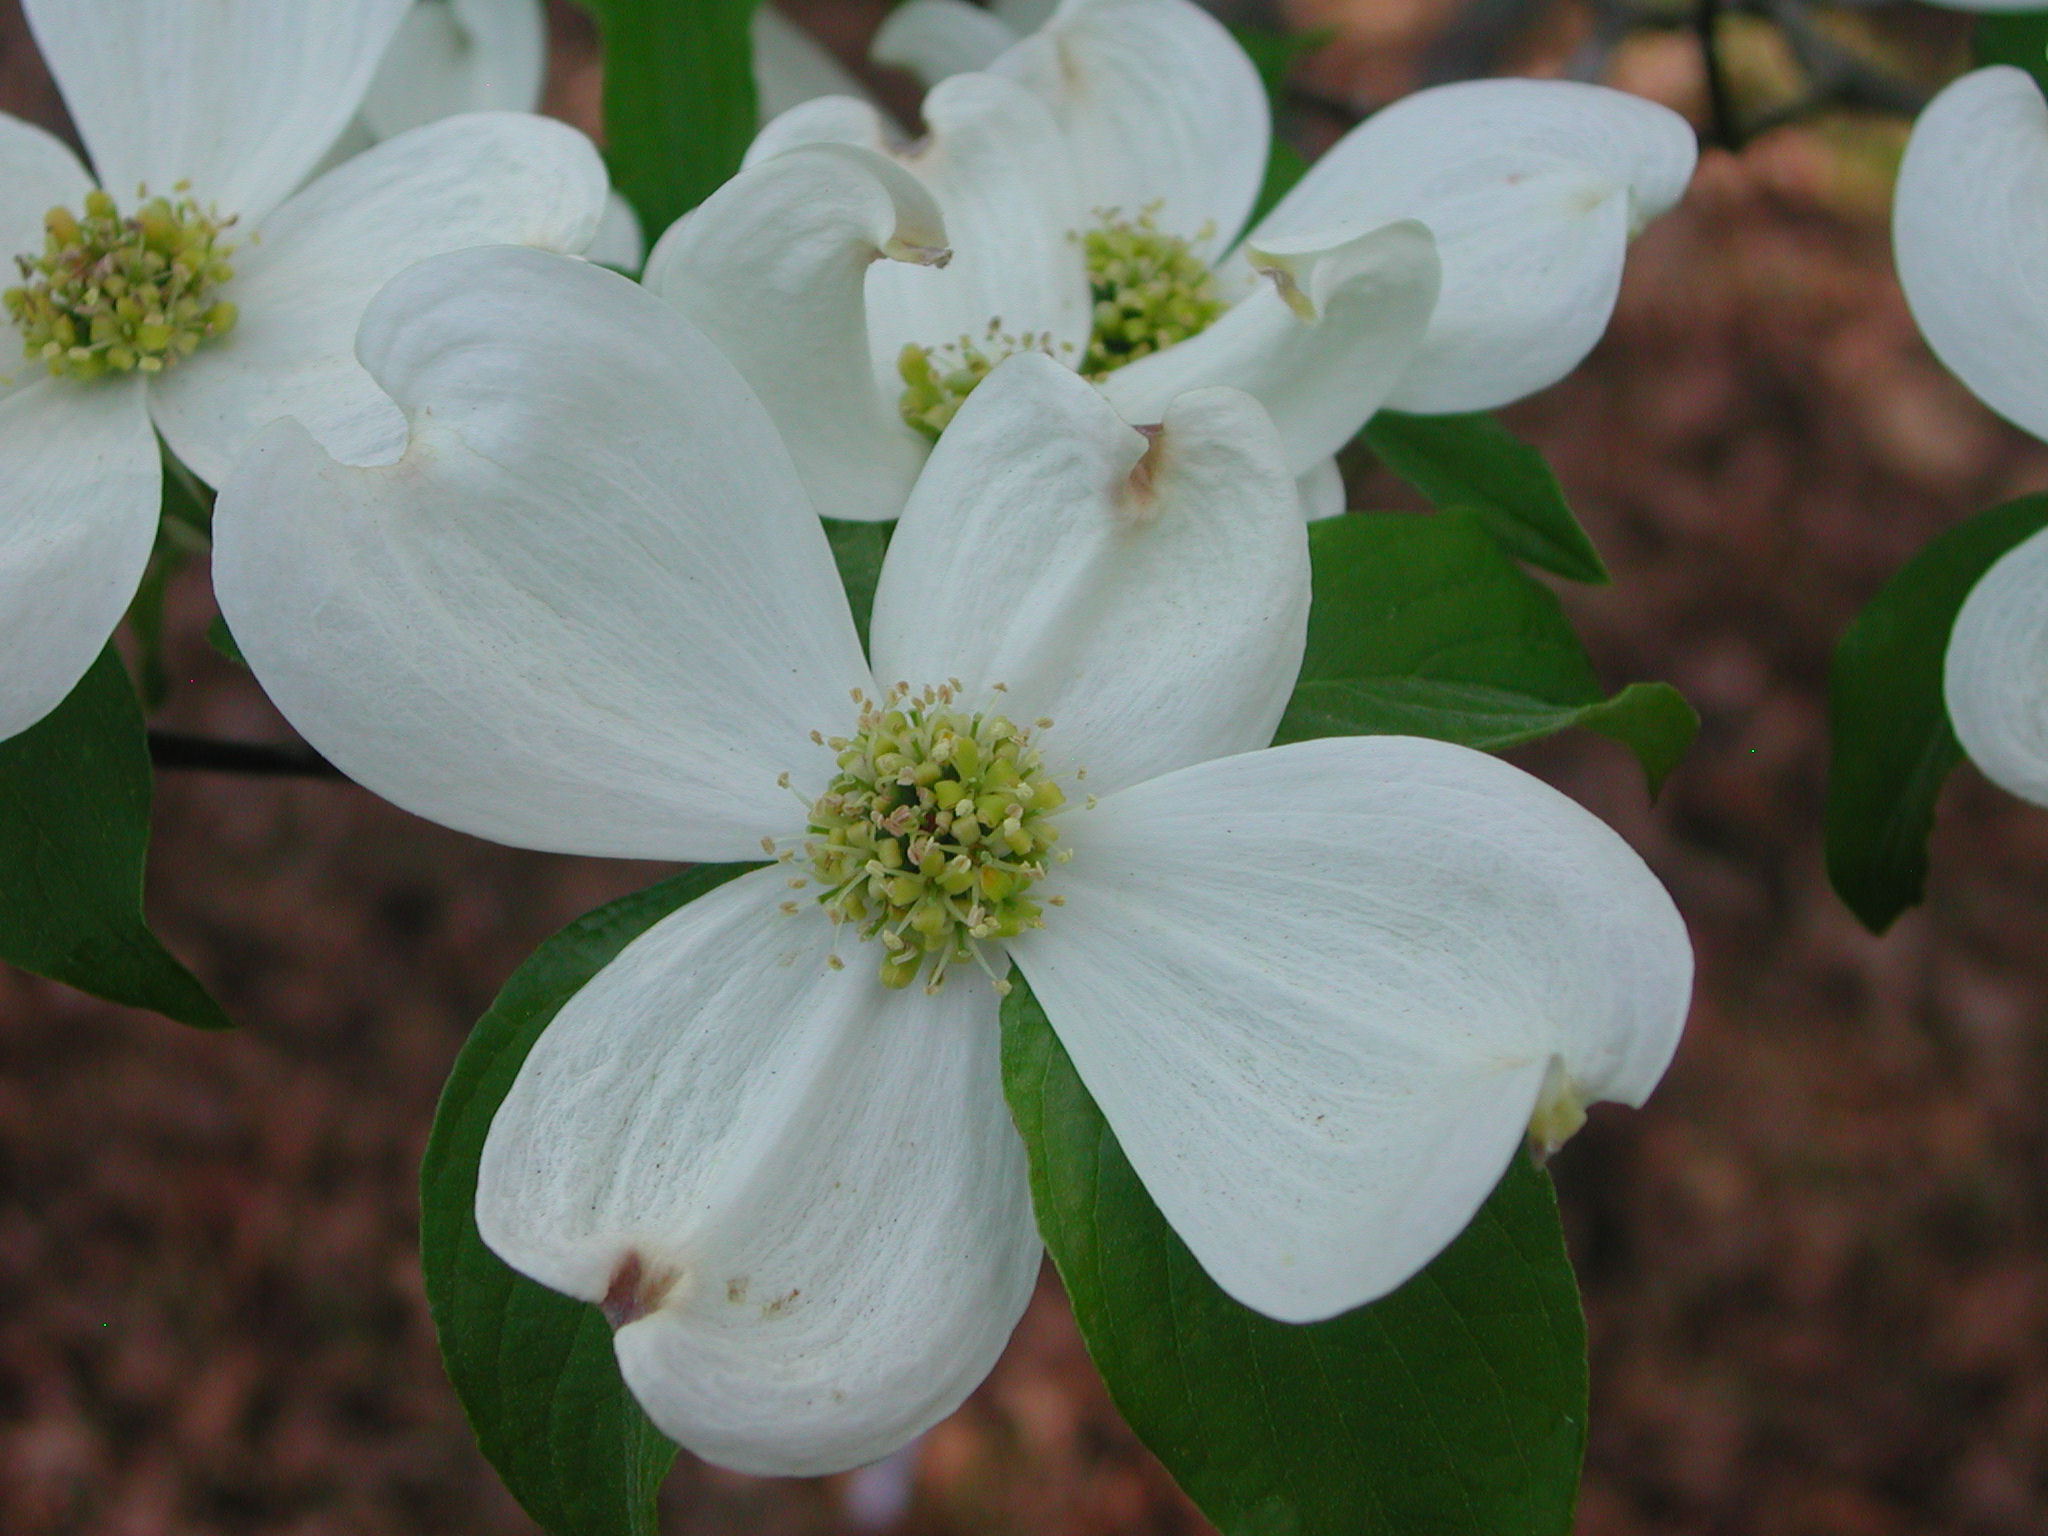 Flowers of Flowering Dogwood | Nature Photo Gallery